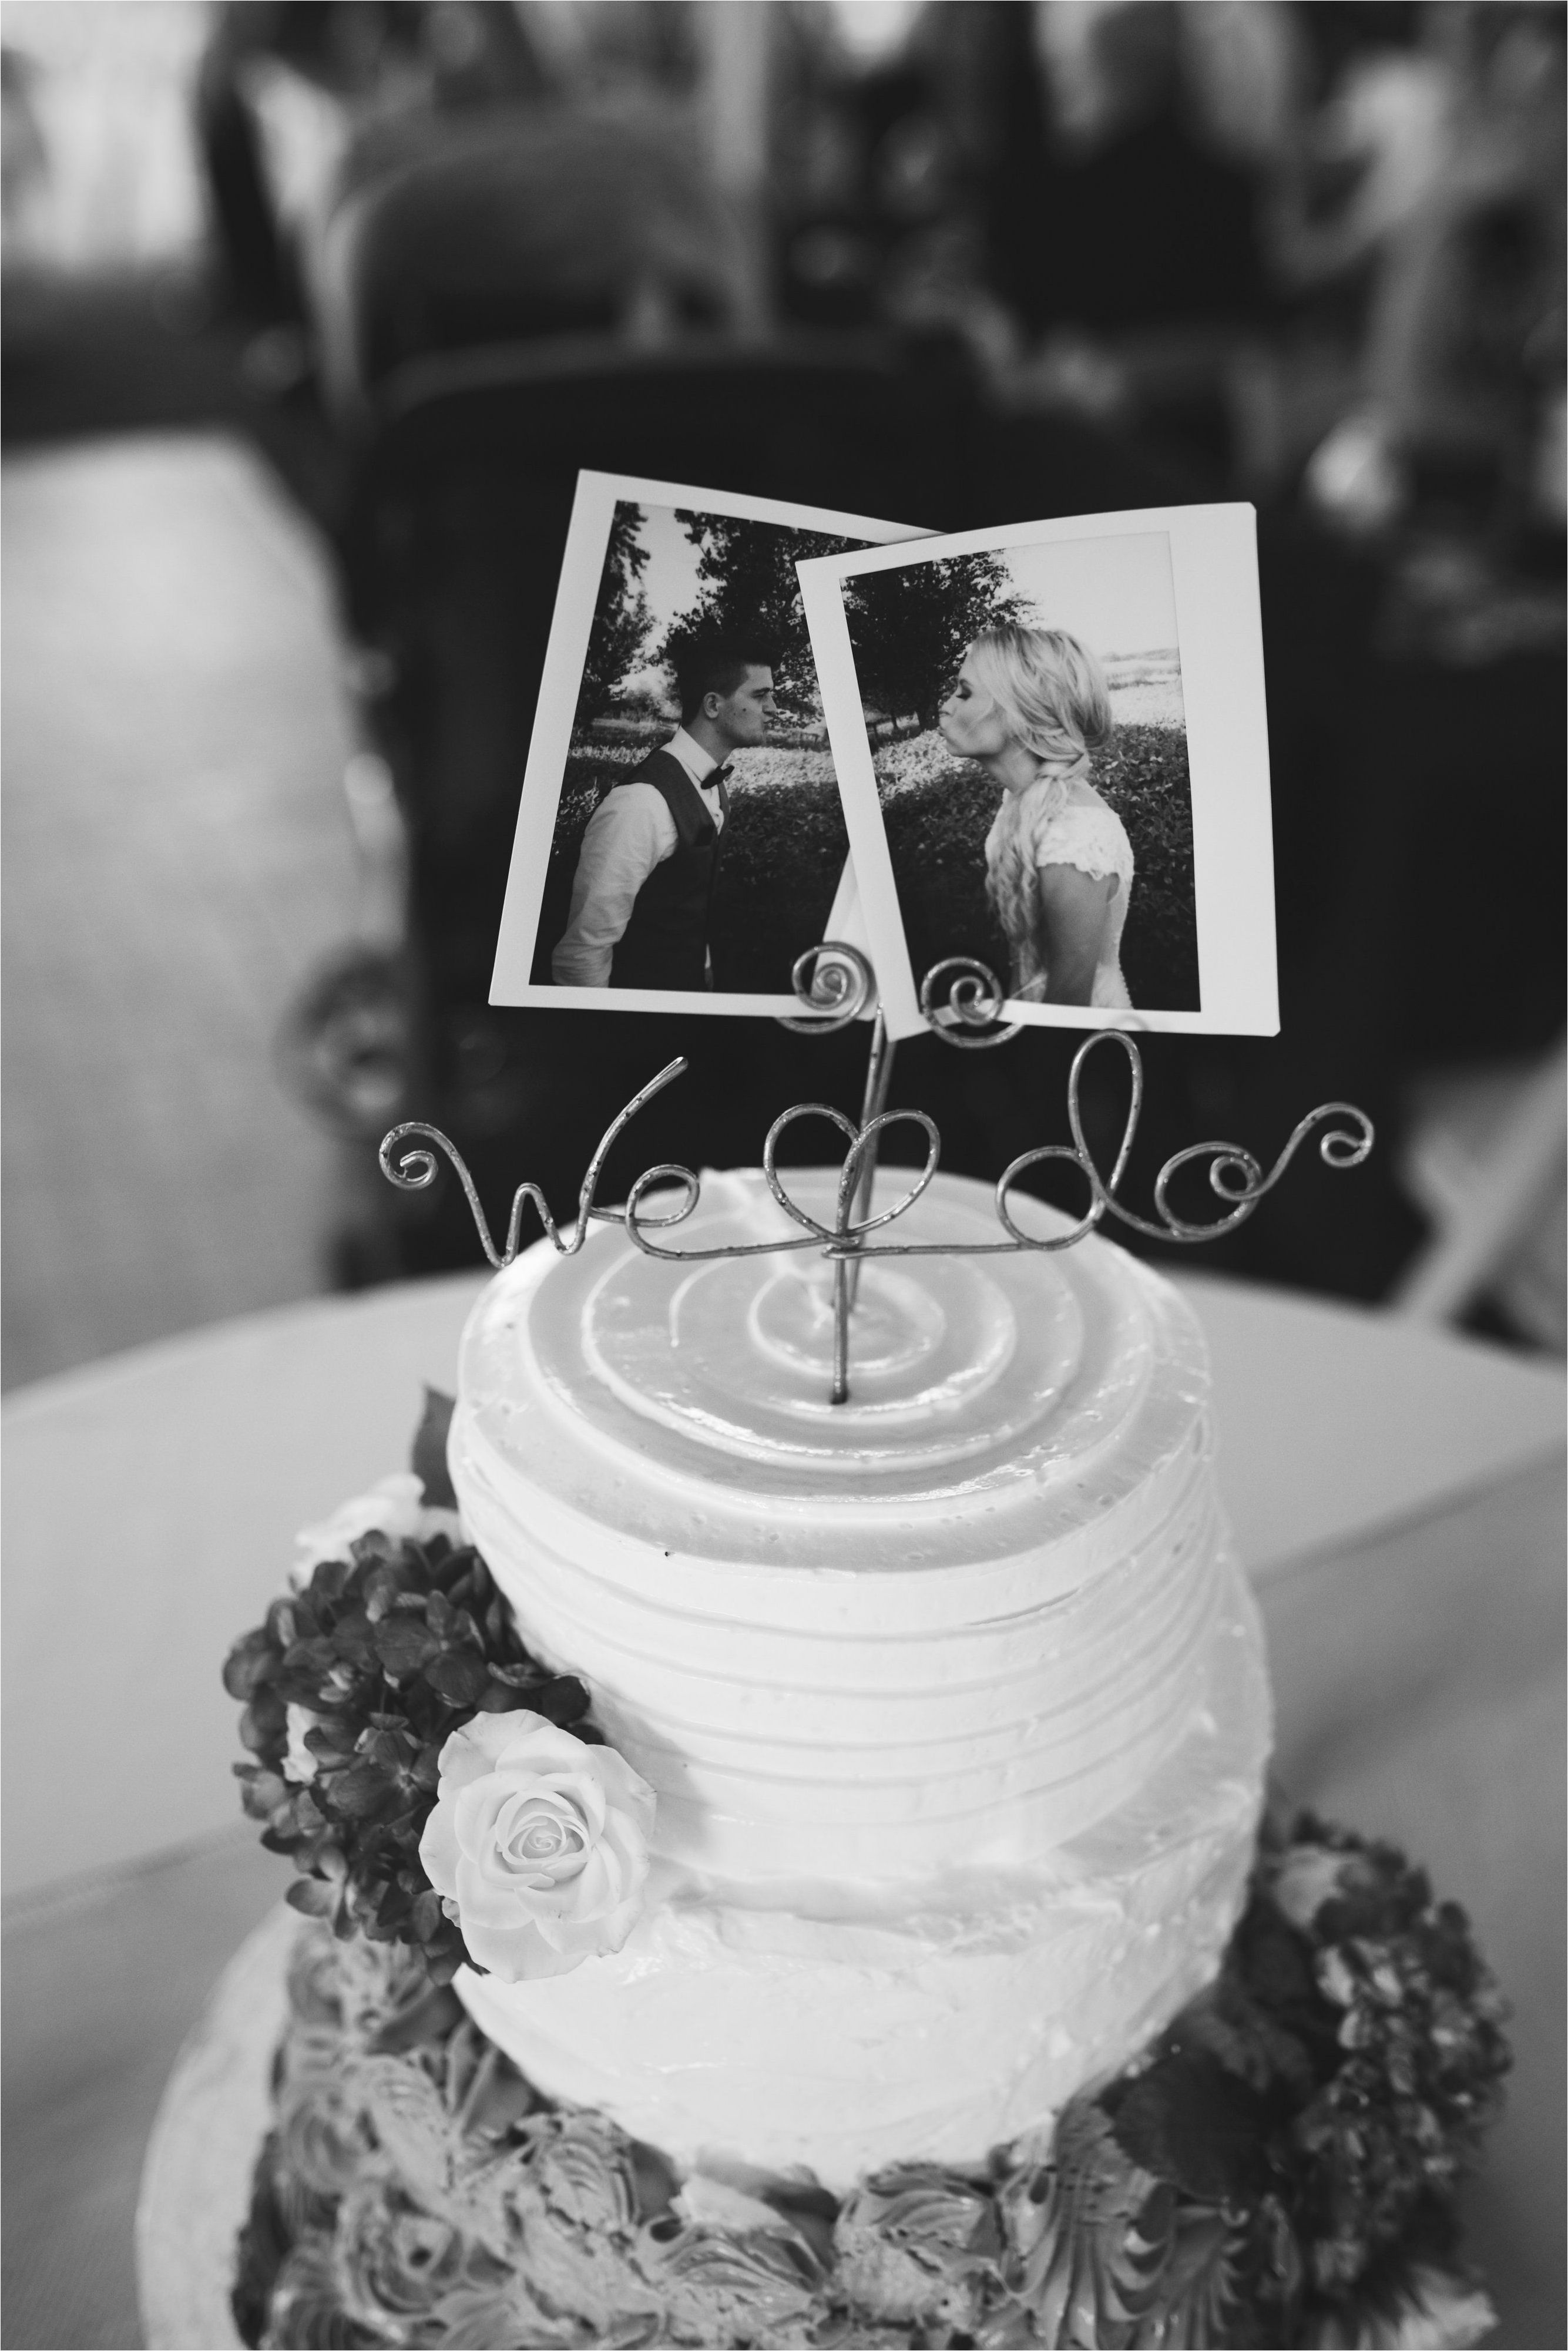 Wedding decorations set october 2018 Wedding Ideas Country Unique wedding day ideas youuve never read